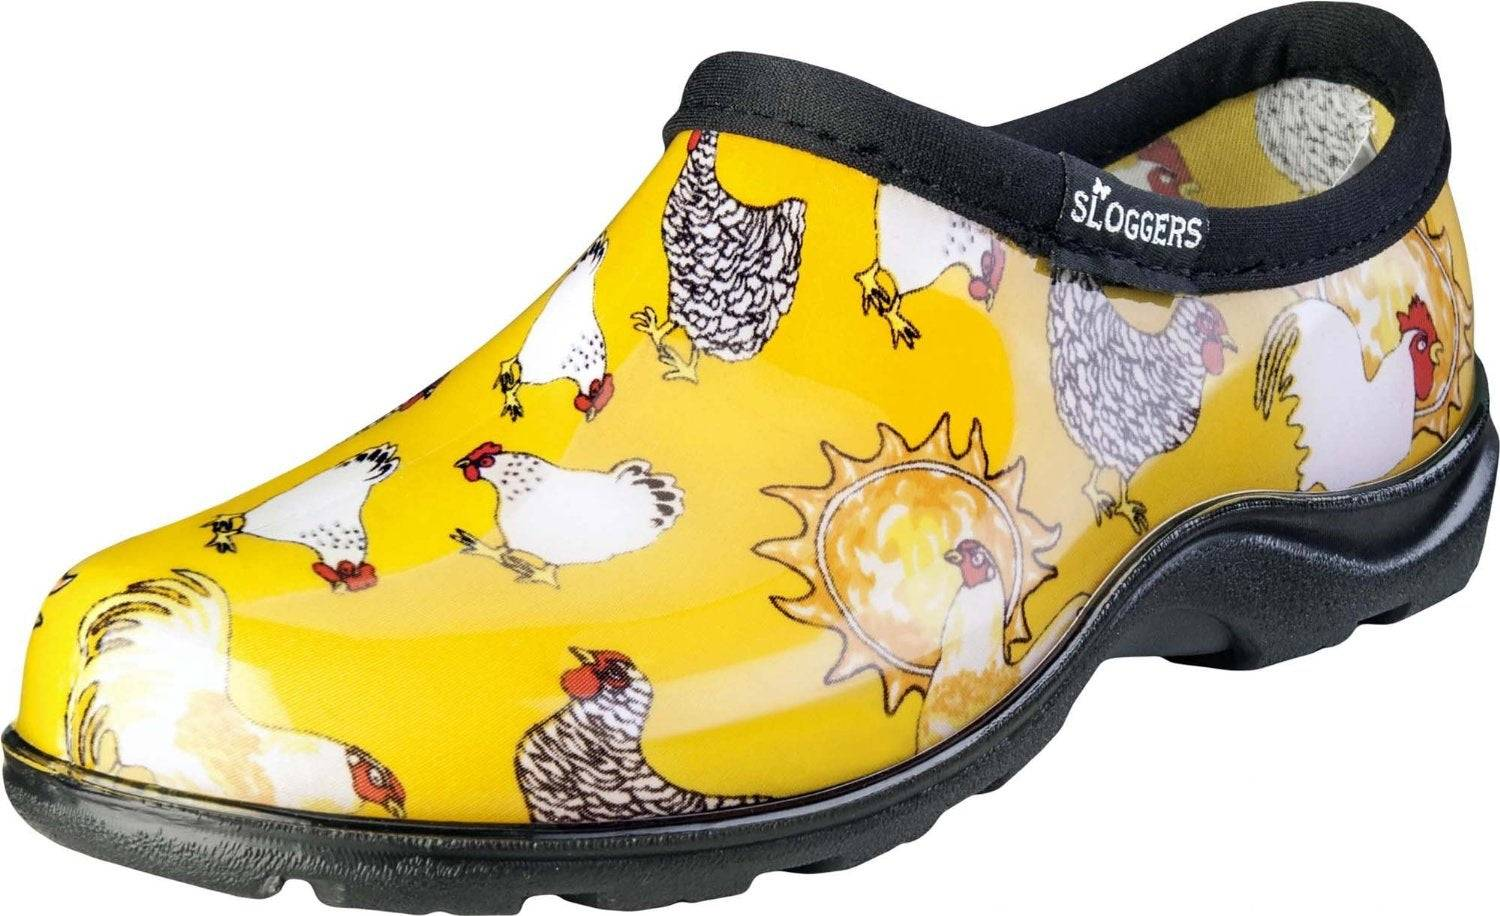 Sloggers 5116cdy06 Chicken Print Collection Women's Rain & Garden Shoe, Size 6, Daffodil Yellow